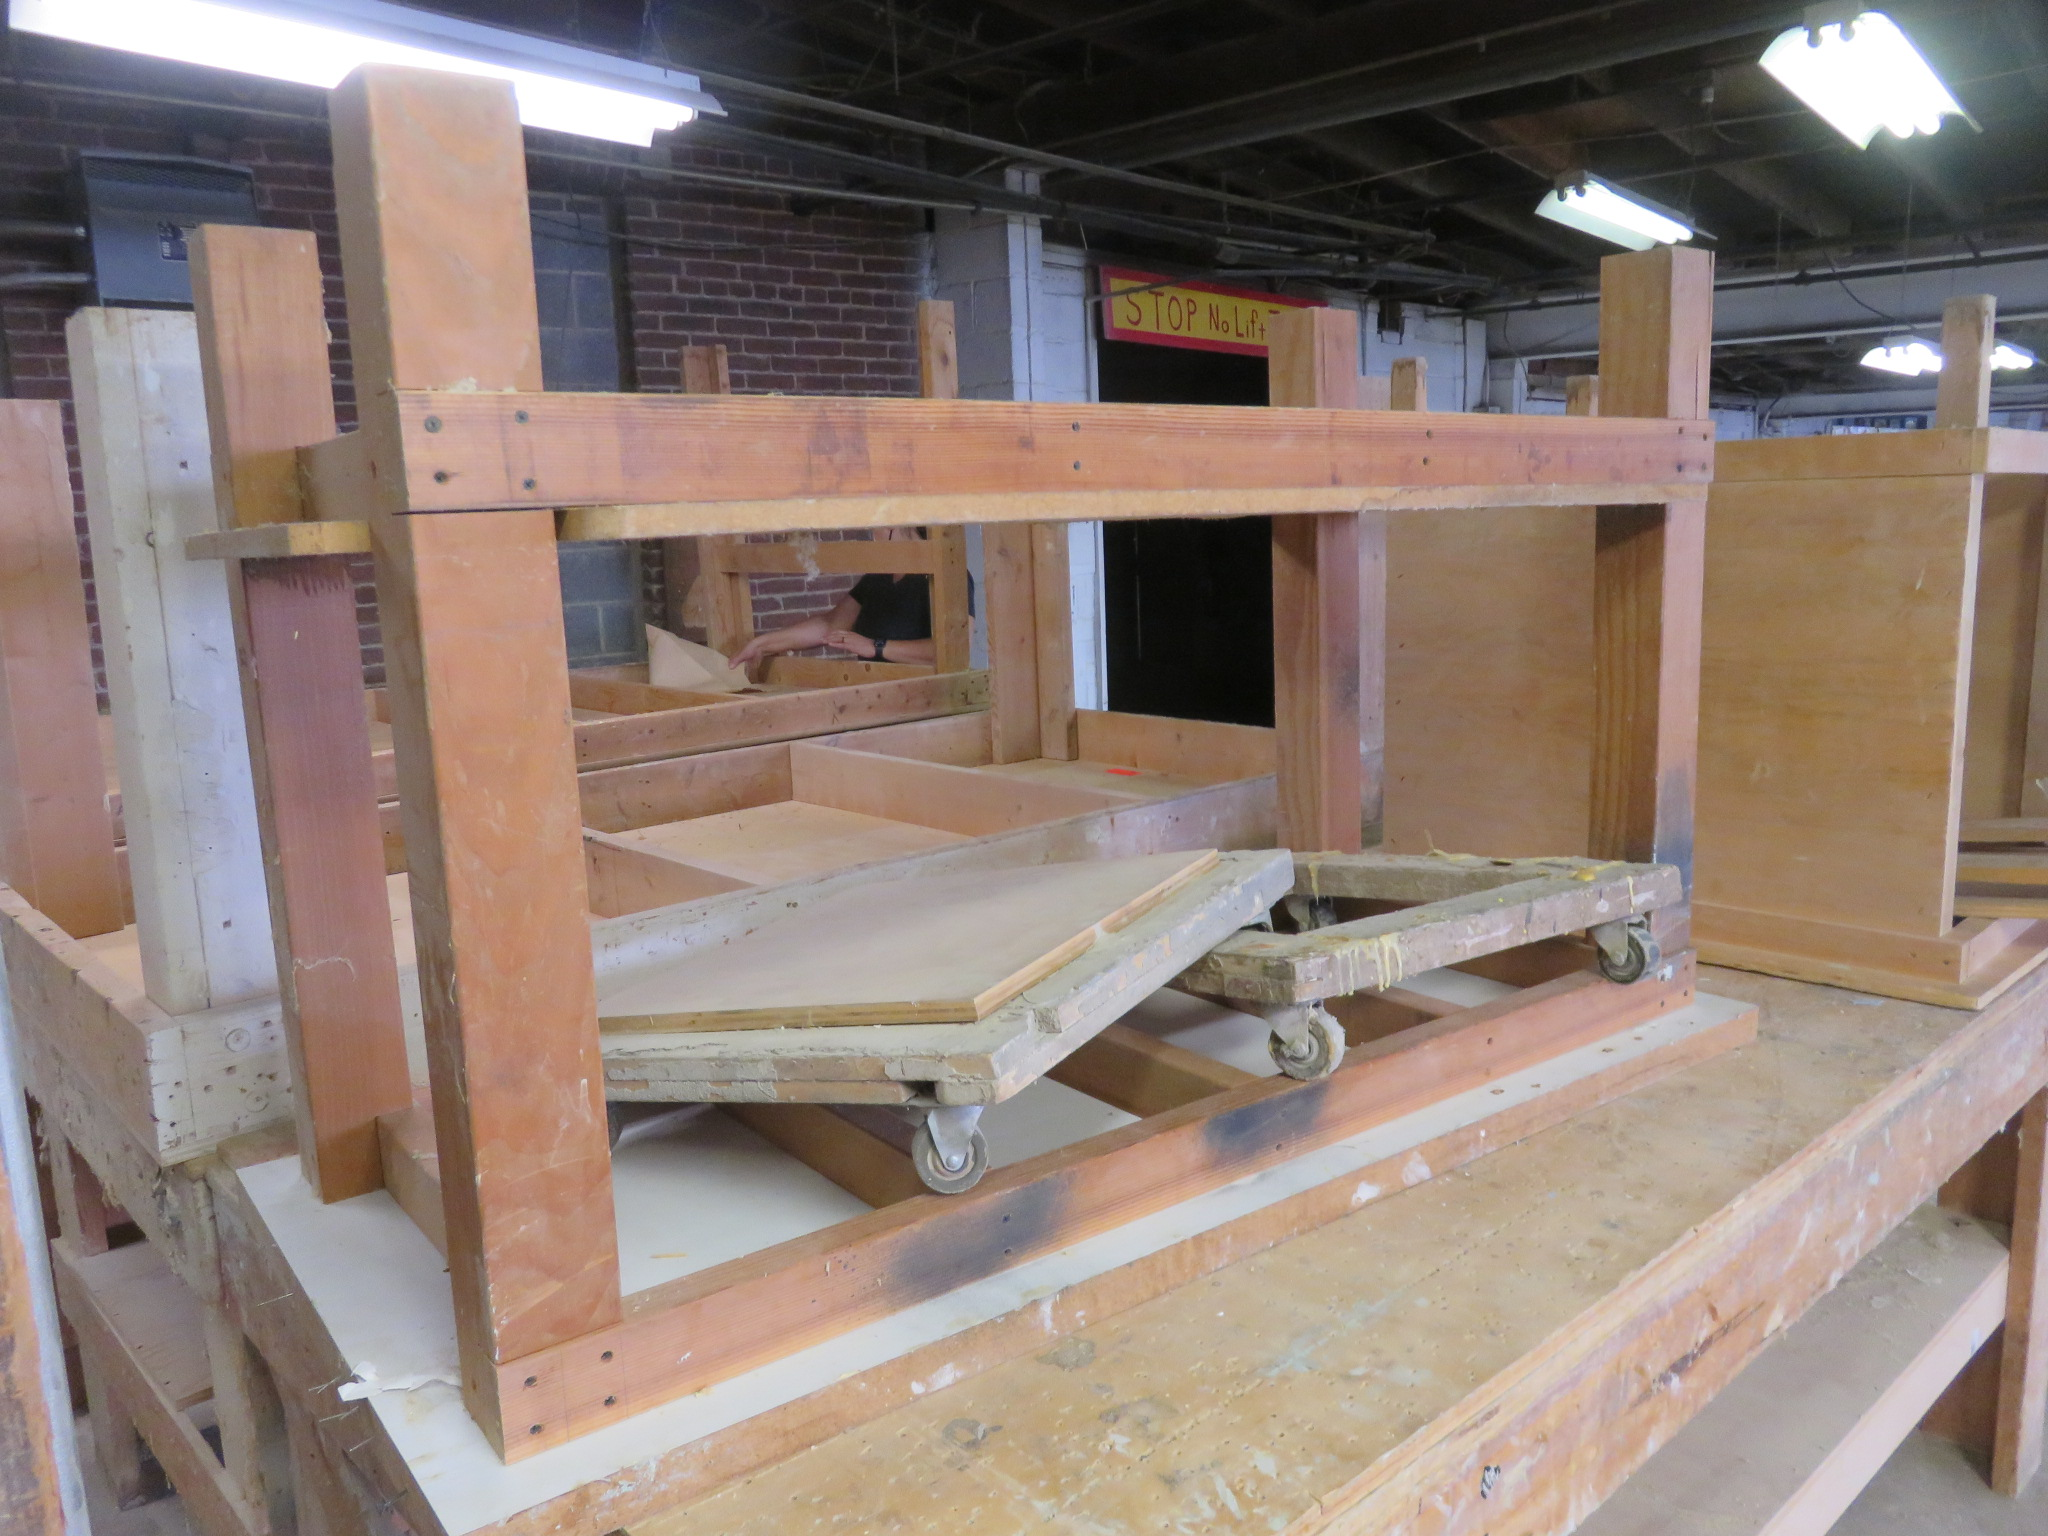 """Heavy Duty Wooden Work Tables Lot of 3 approx 96""""x 48""""x 36, 38""""x 32""""x 34"""" 60""""x 28""""x 36"""" - Image 2 of 4"""